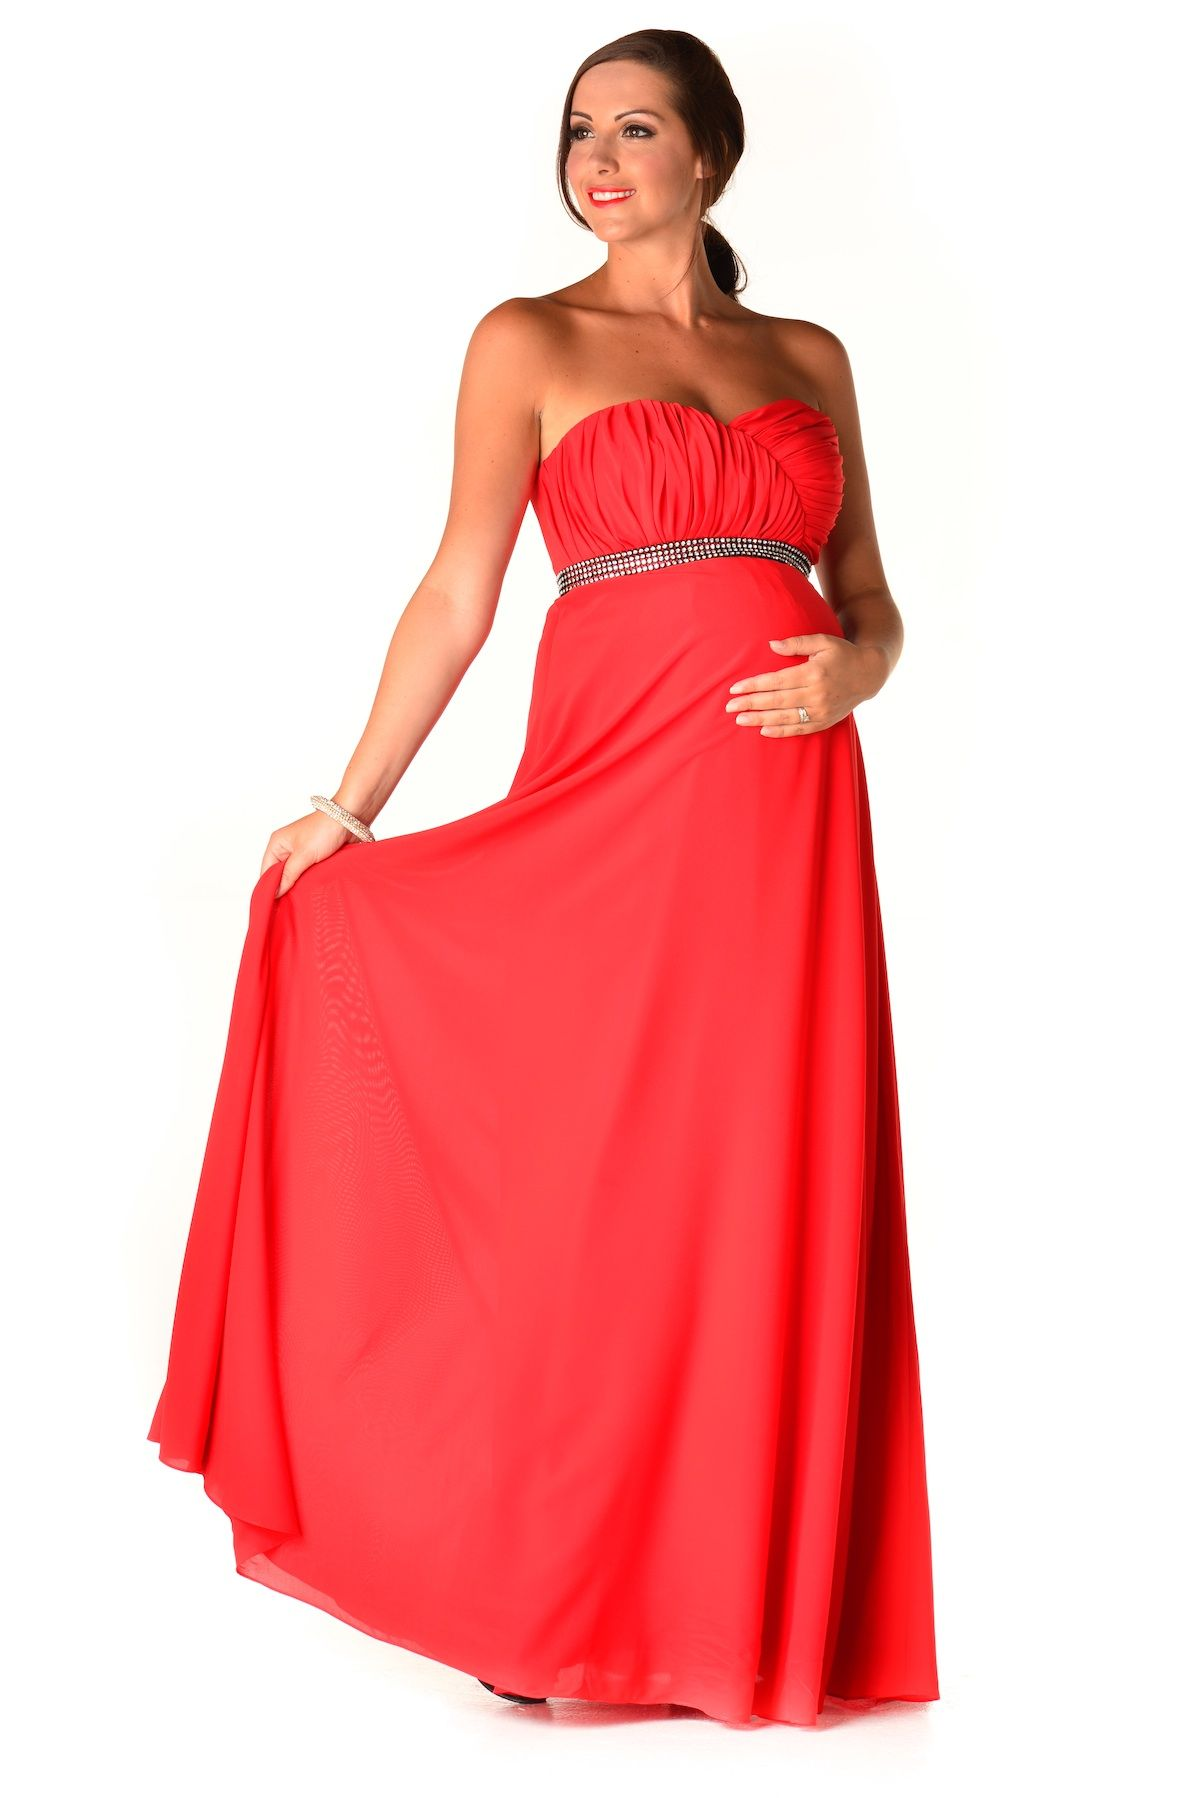 Maternity bridesmaid dresses as the great dress maternity maternity bridesmaid dresses as the great dress ombrellifo Image collections